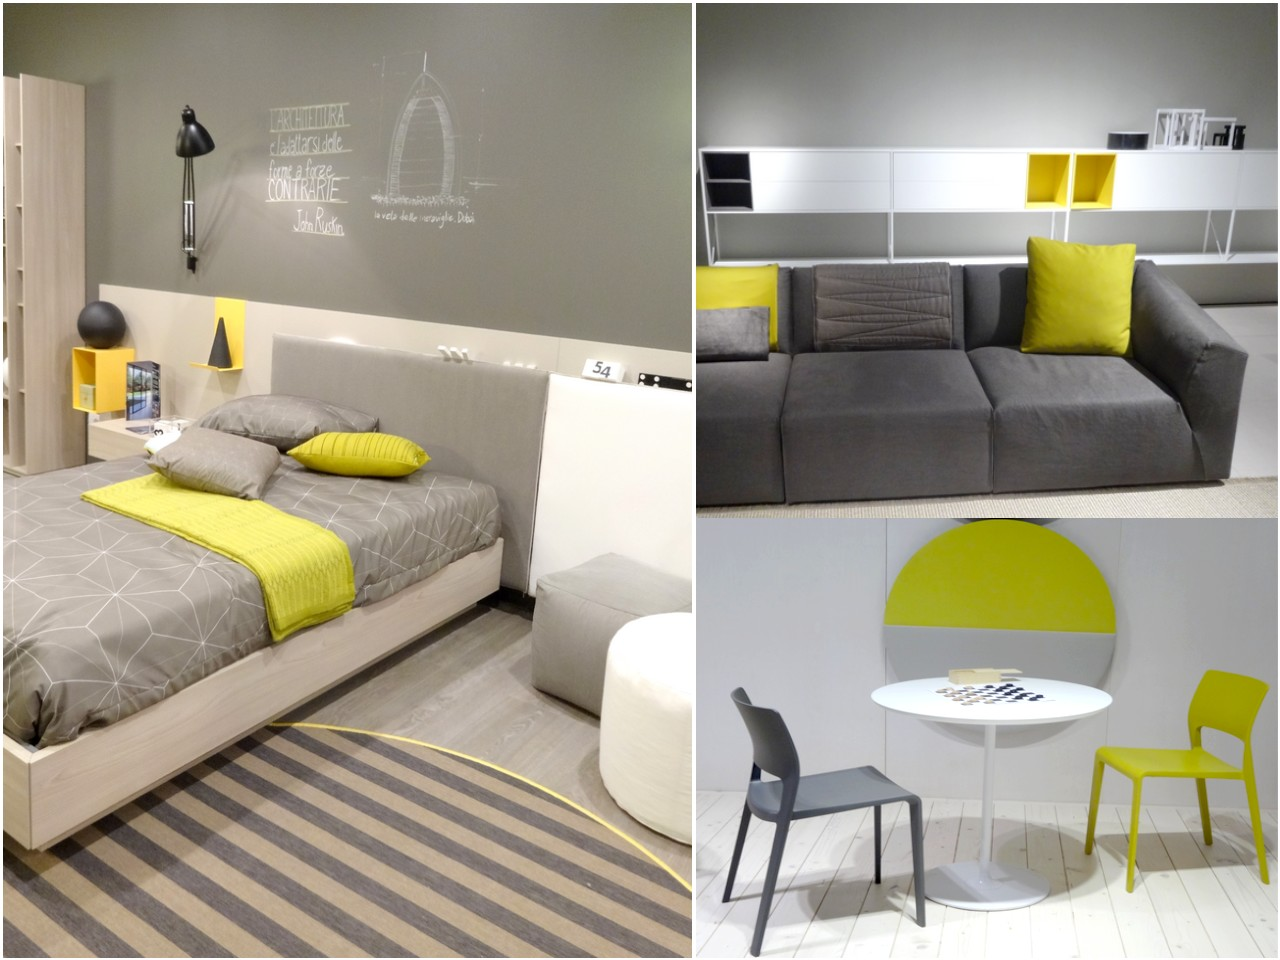 Tendencias decoraci n 2015 2016 mil n siempre sorprende - Tendencias en decoracion de interiores ...